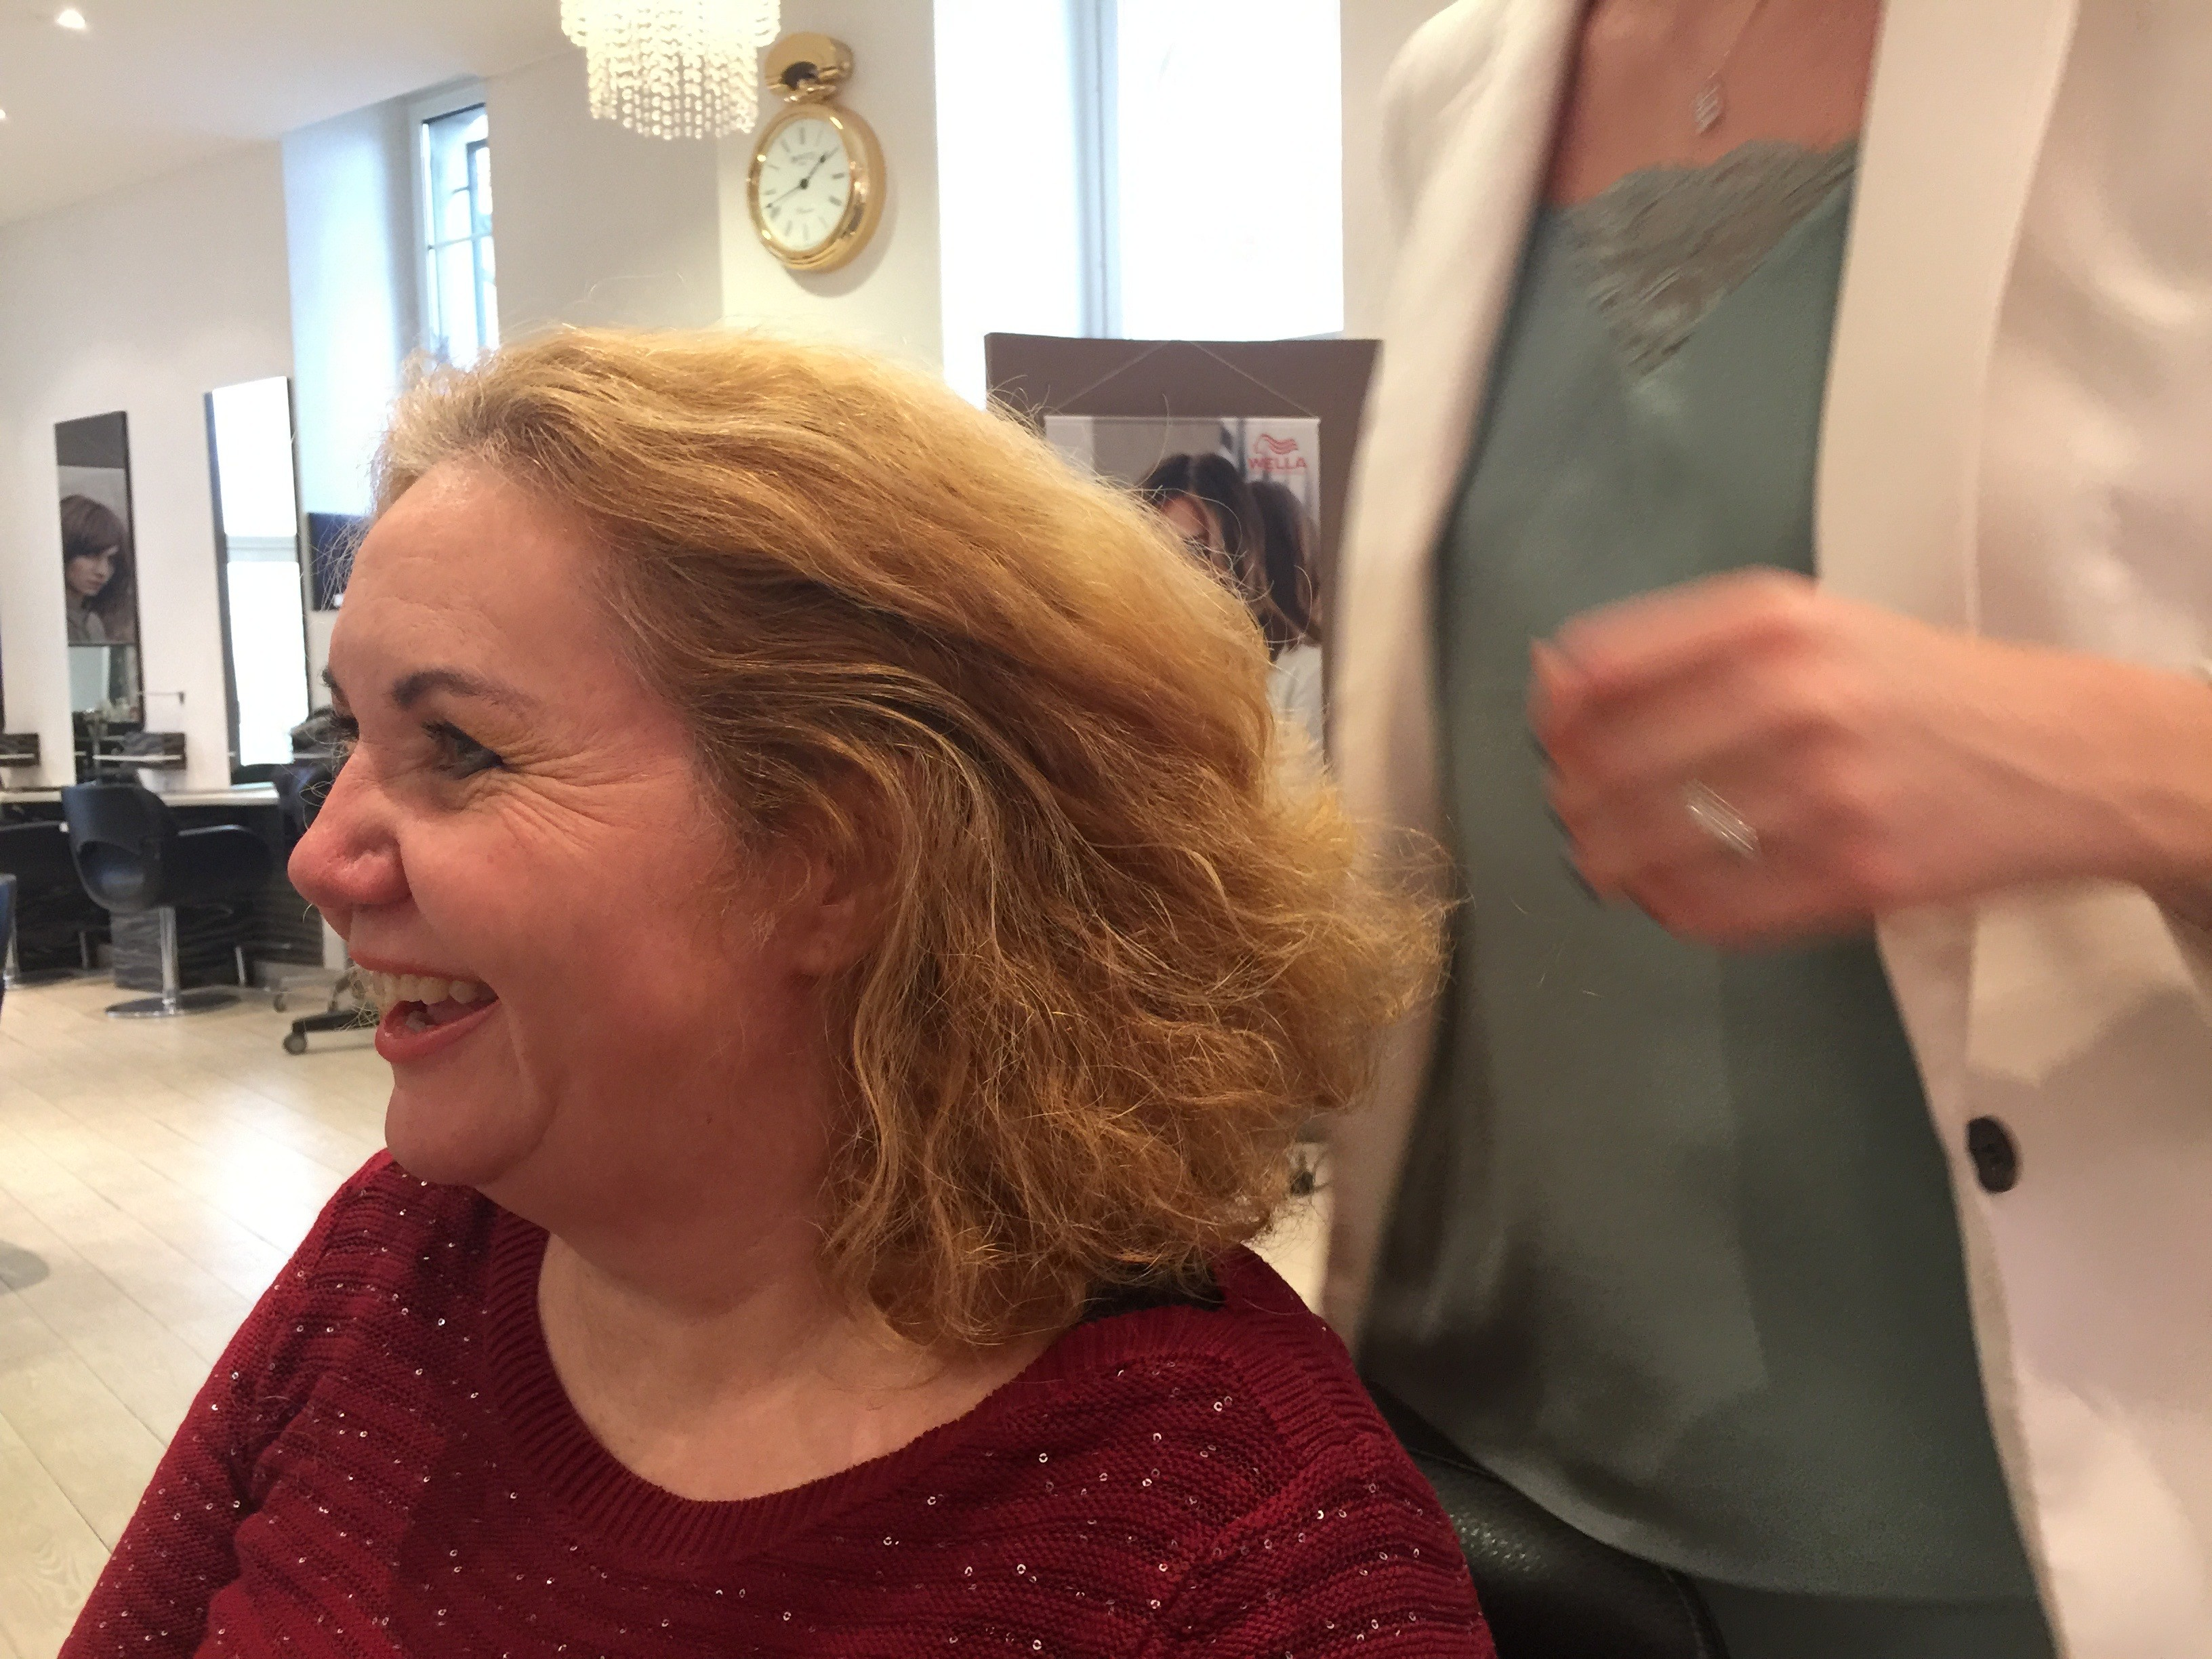 Couleur et coupe coiffure Christine 2 by Mademoiselle M